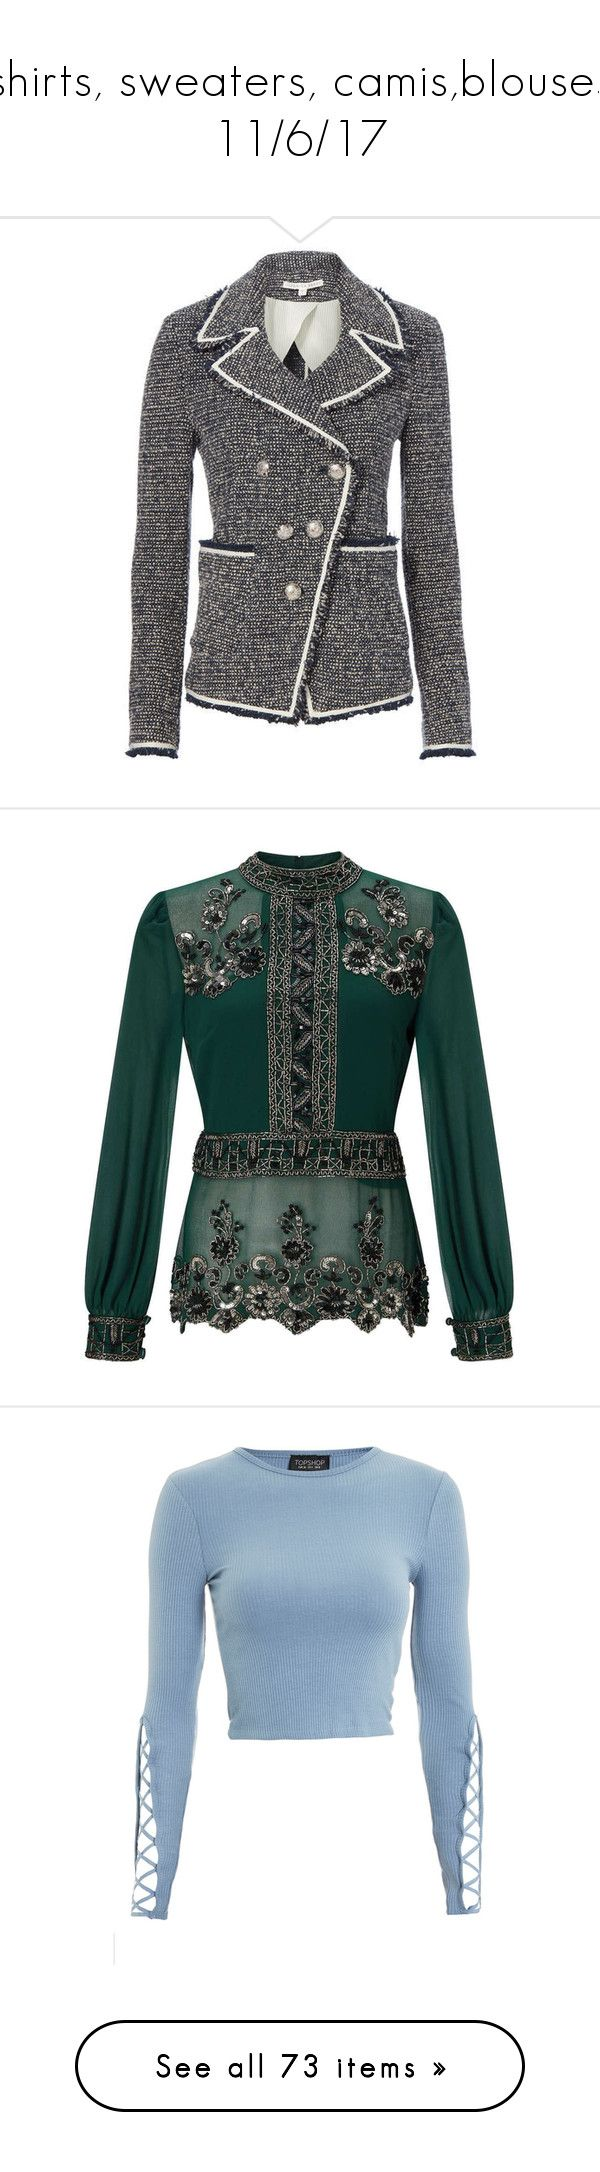 """shirts, sweaters, camis,blouses 11/6/17"" by gigiglow ❤ liked on Polyvore featuring grey, veronica beard, tops, blouses, black, green blouse, green top, miss selfridge, embellished top and miss selfridge tops"